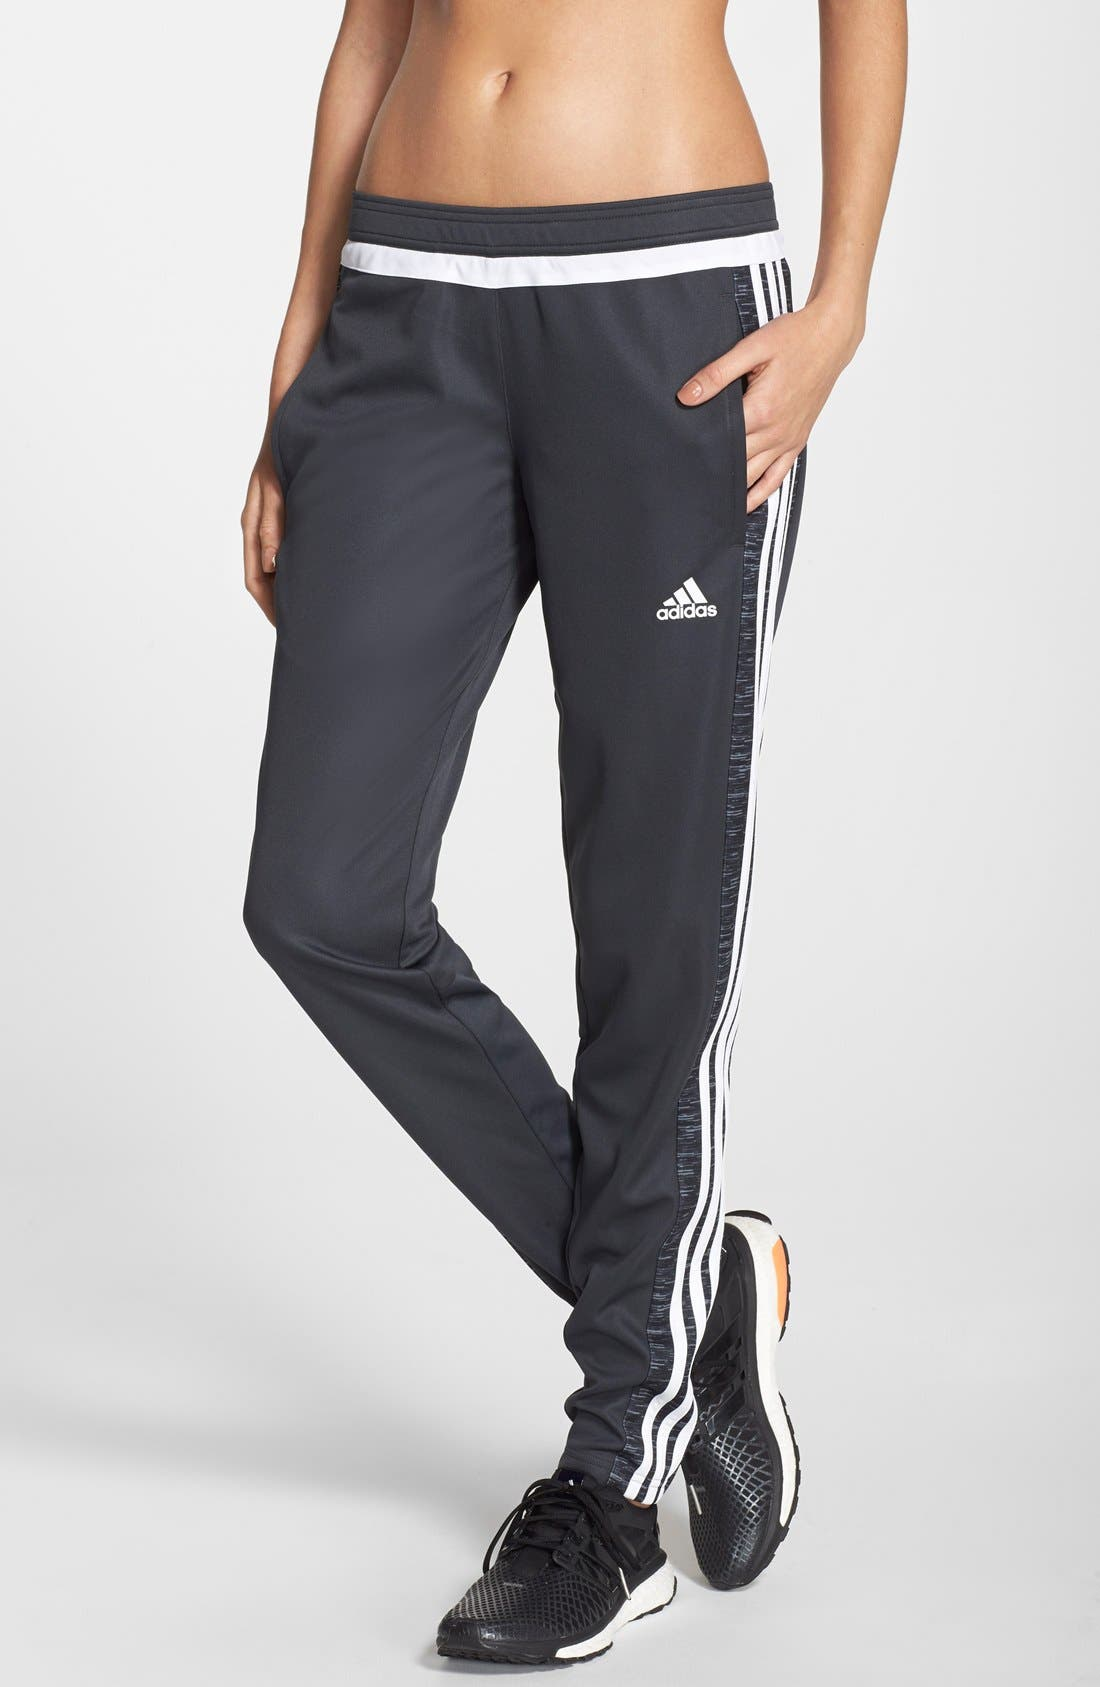 Main Image - adidas 'Tiro 15' Training Pants